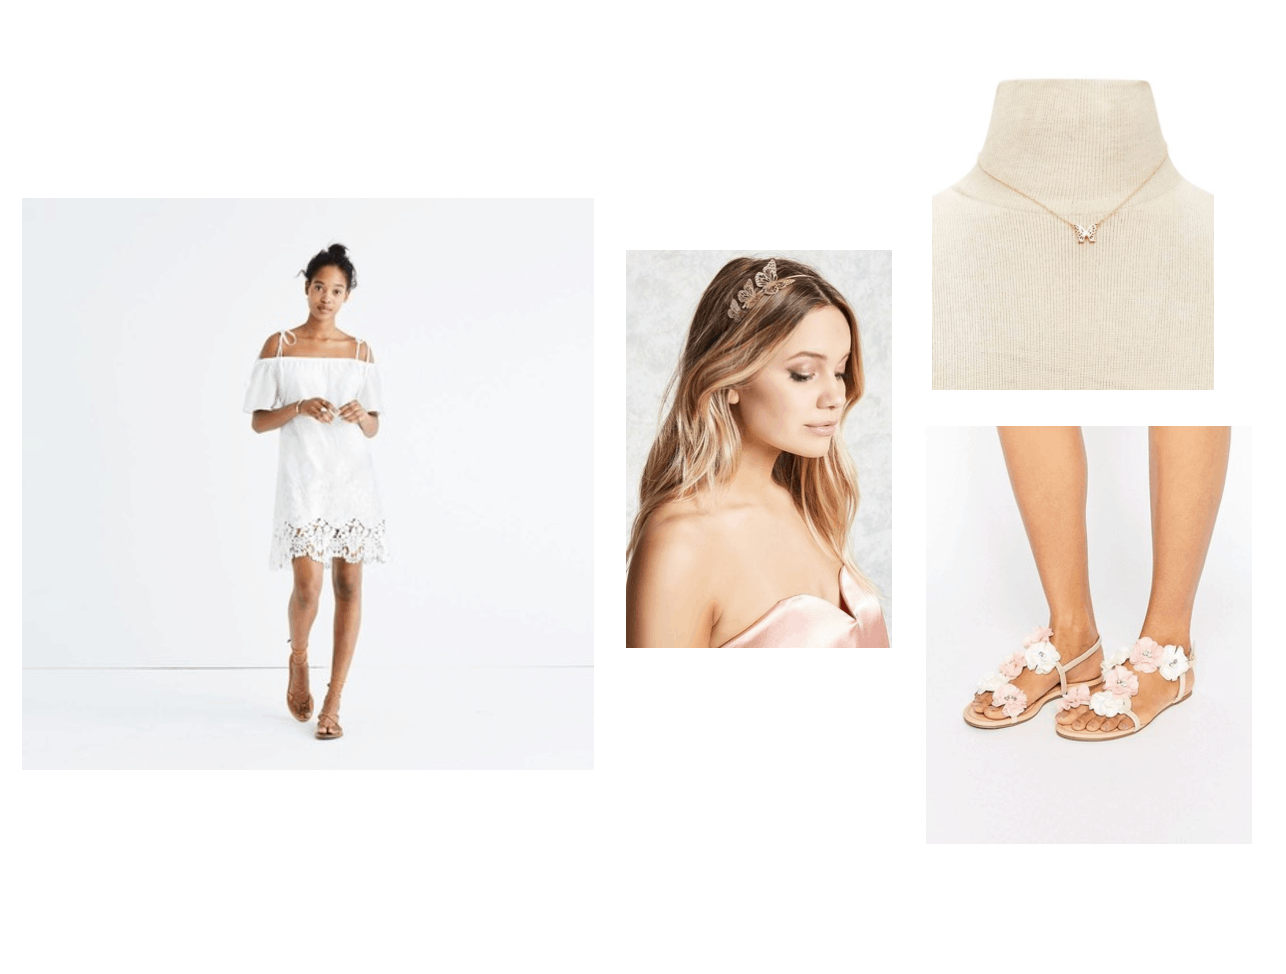 Pretty summer outfit idea: Off the shoulder white dress with lace accents, simple pendant necklace in gold, flower sandals, headband